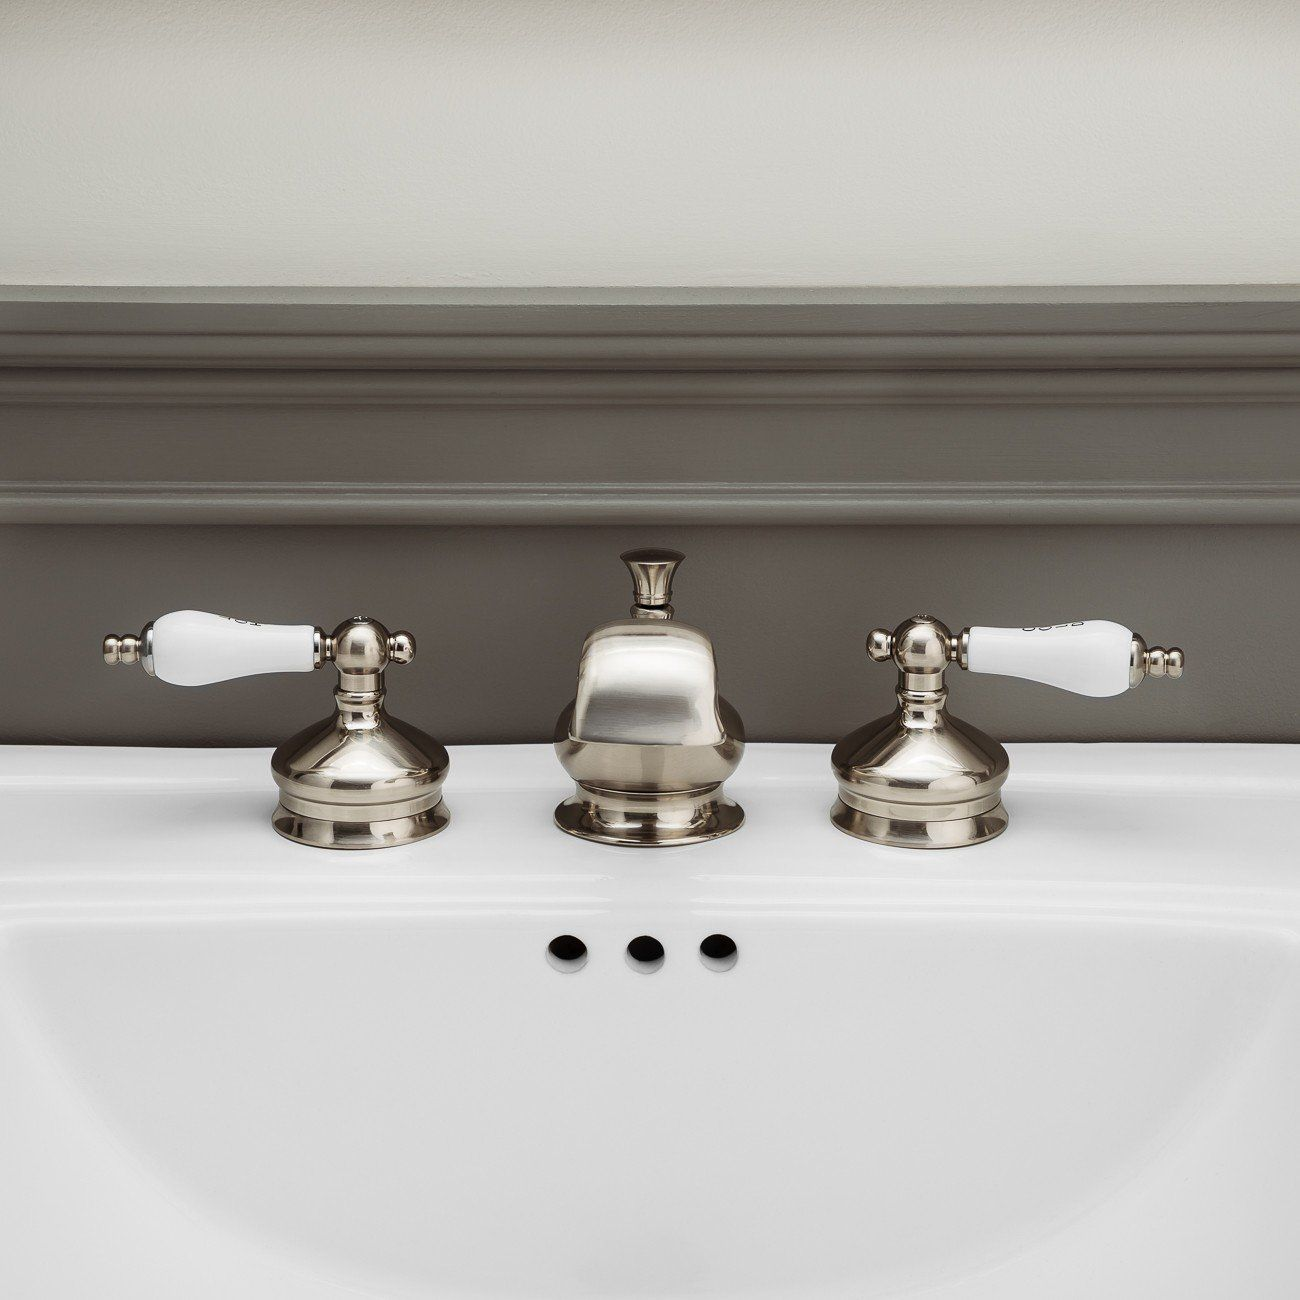 Widespread Bathroom Sink Faucet Porcelain Lever Handles With